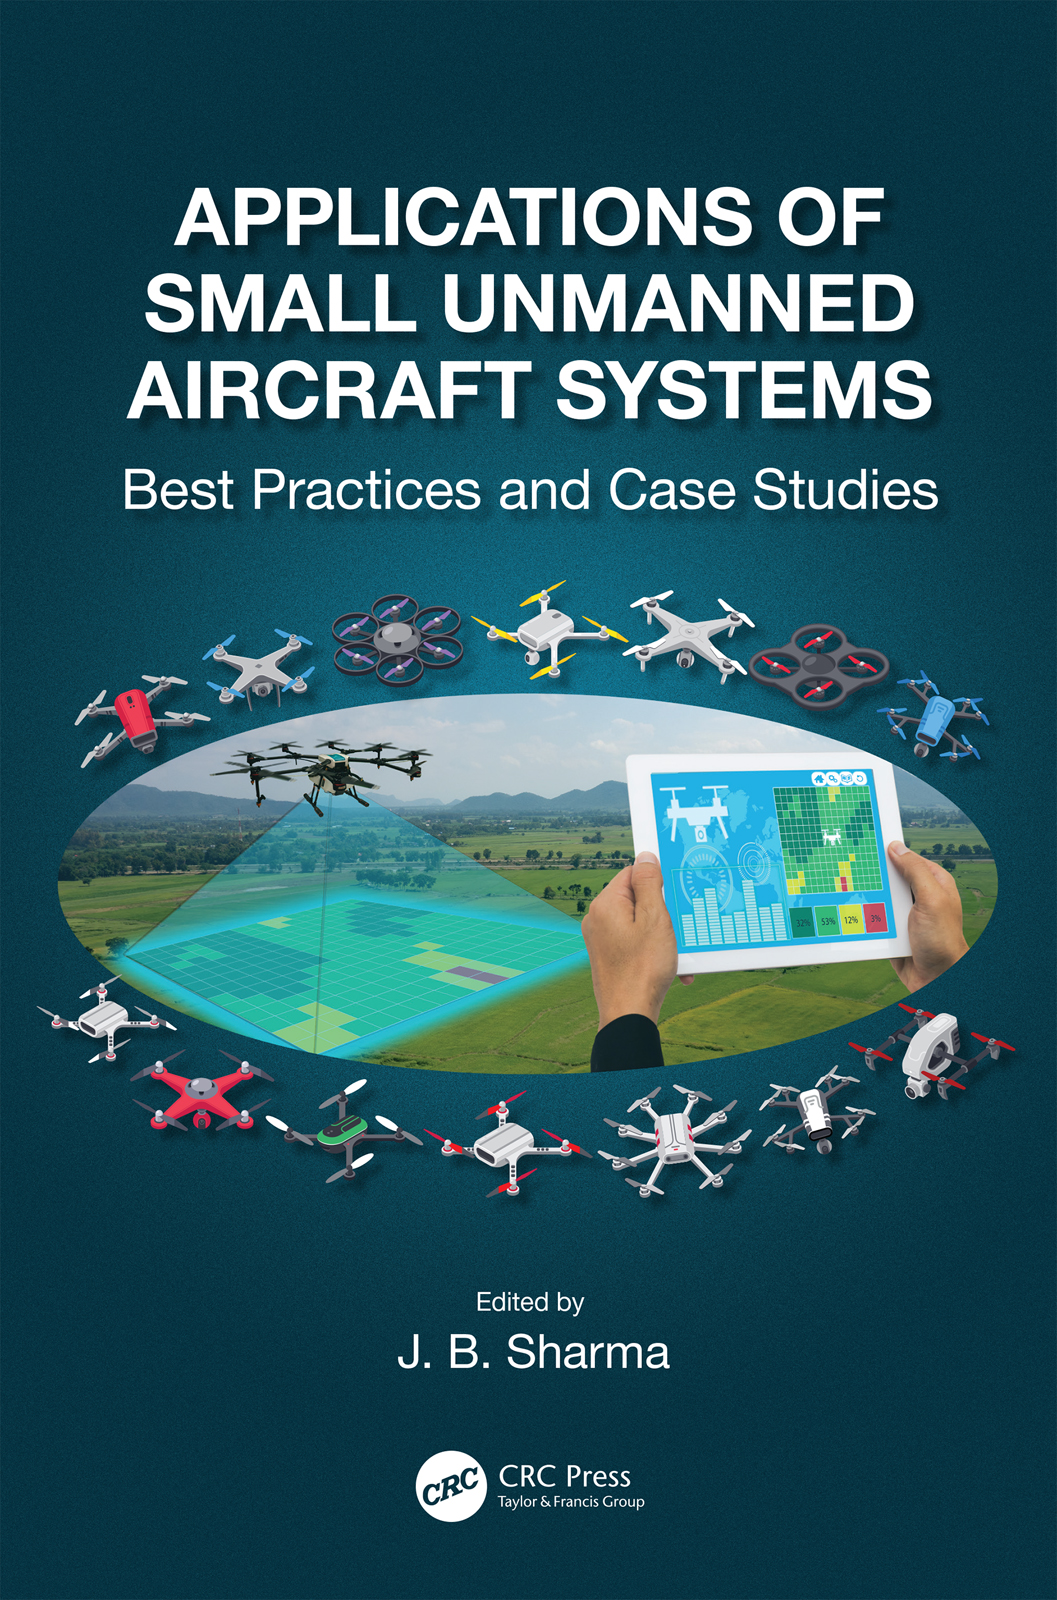 Applications of Small Unmanned Aircraft Systems: Best Practices and Case Studies book cover